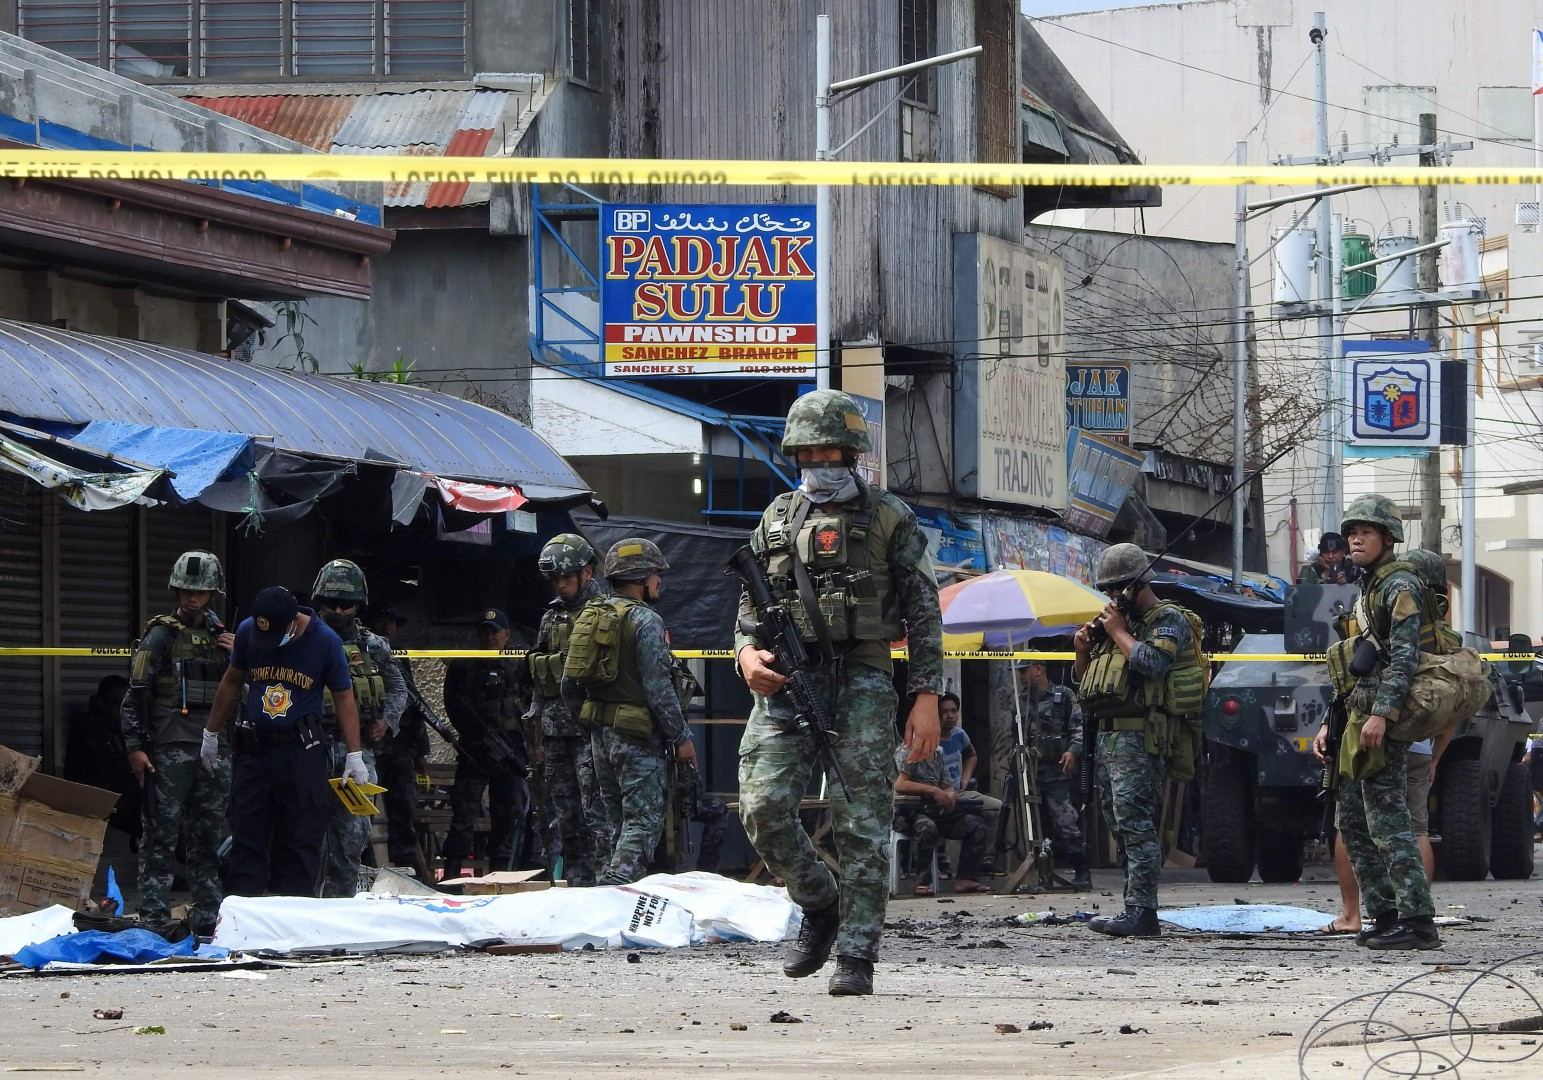 Policemen and soldiers keep watch as body bags (in white), containing the remains of blast victims, as seen in a cordoned area outside a church in Jolo, Sulu province on the southern island of Mindanao, on January 27, 2019. - At least 18 people were killed when two bombs hit a church on a southern Philippine island that is a stronghold of Islamist militants, the military said on January 27, days after voters backed the creation of a new Muslim autonomous region. (Photo by NICKEE BUTLANGAN / AFP)